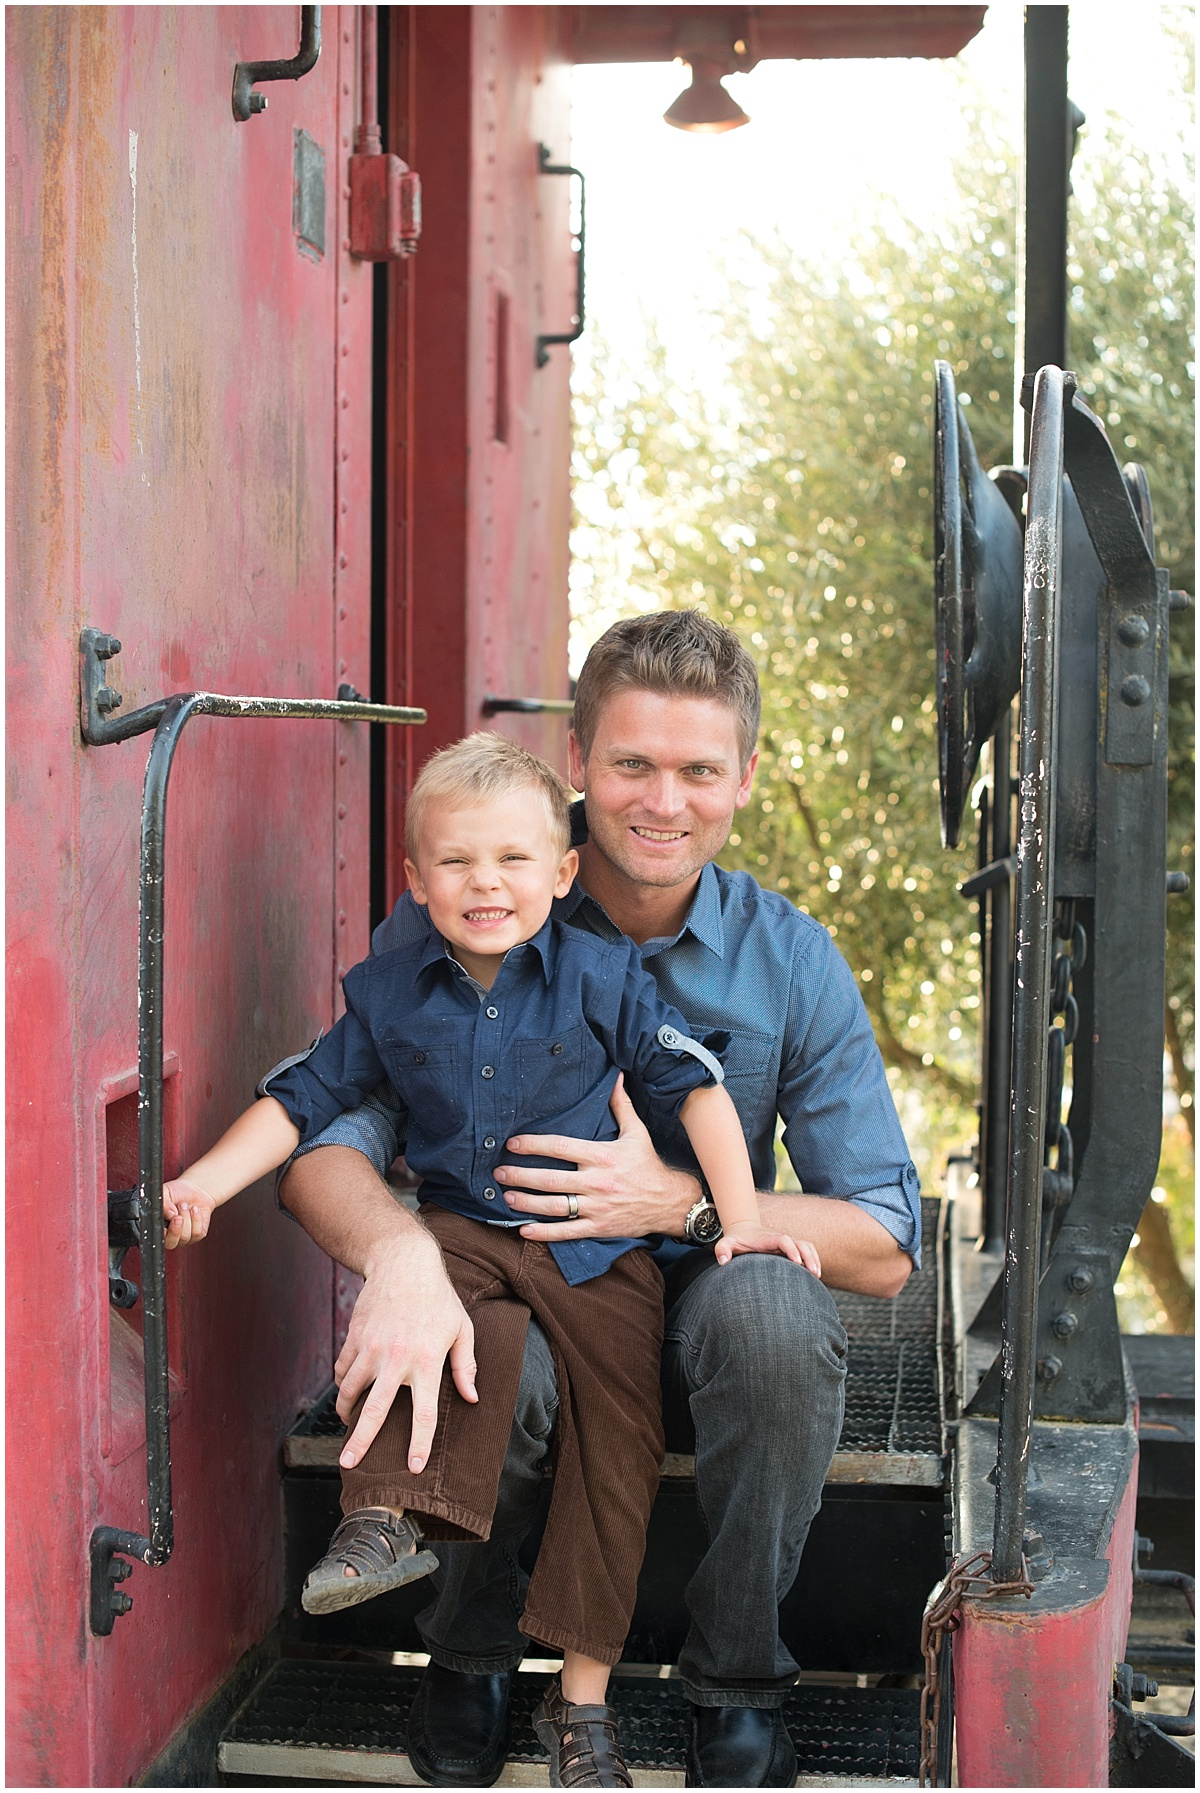 Father and Son at Pomar Junction in Paso Robles, CA